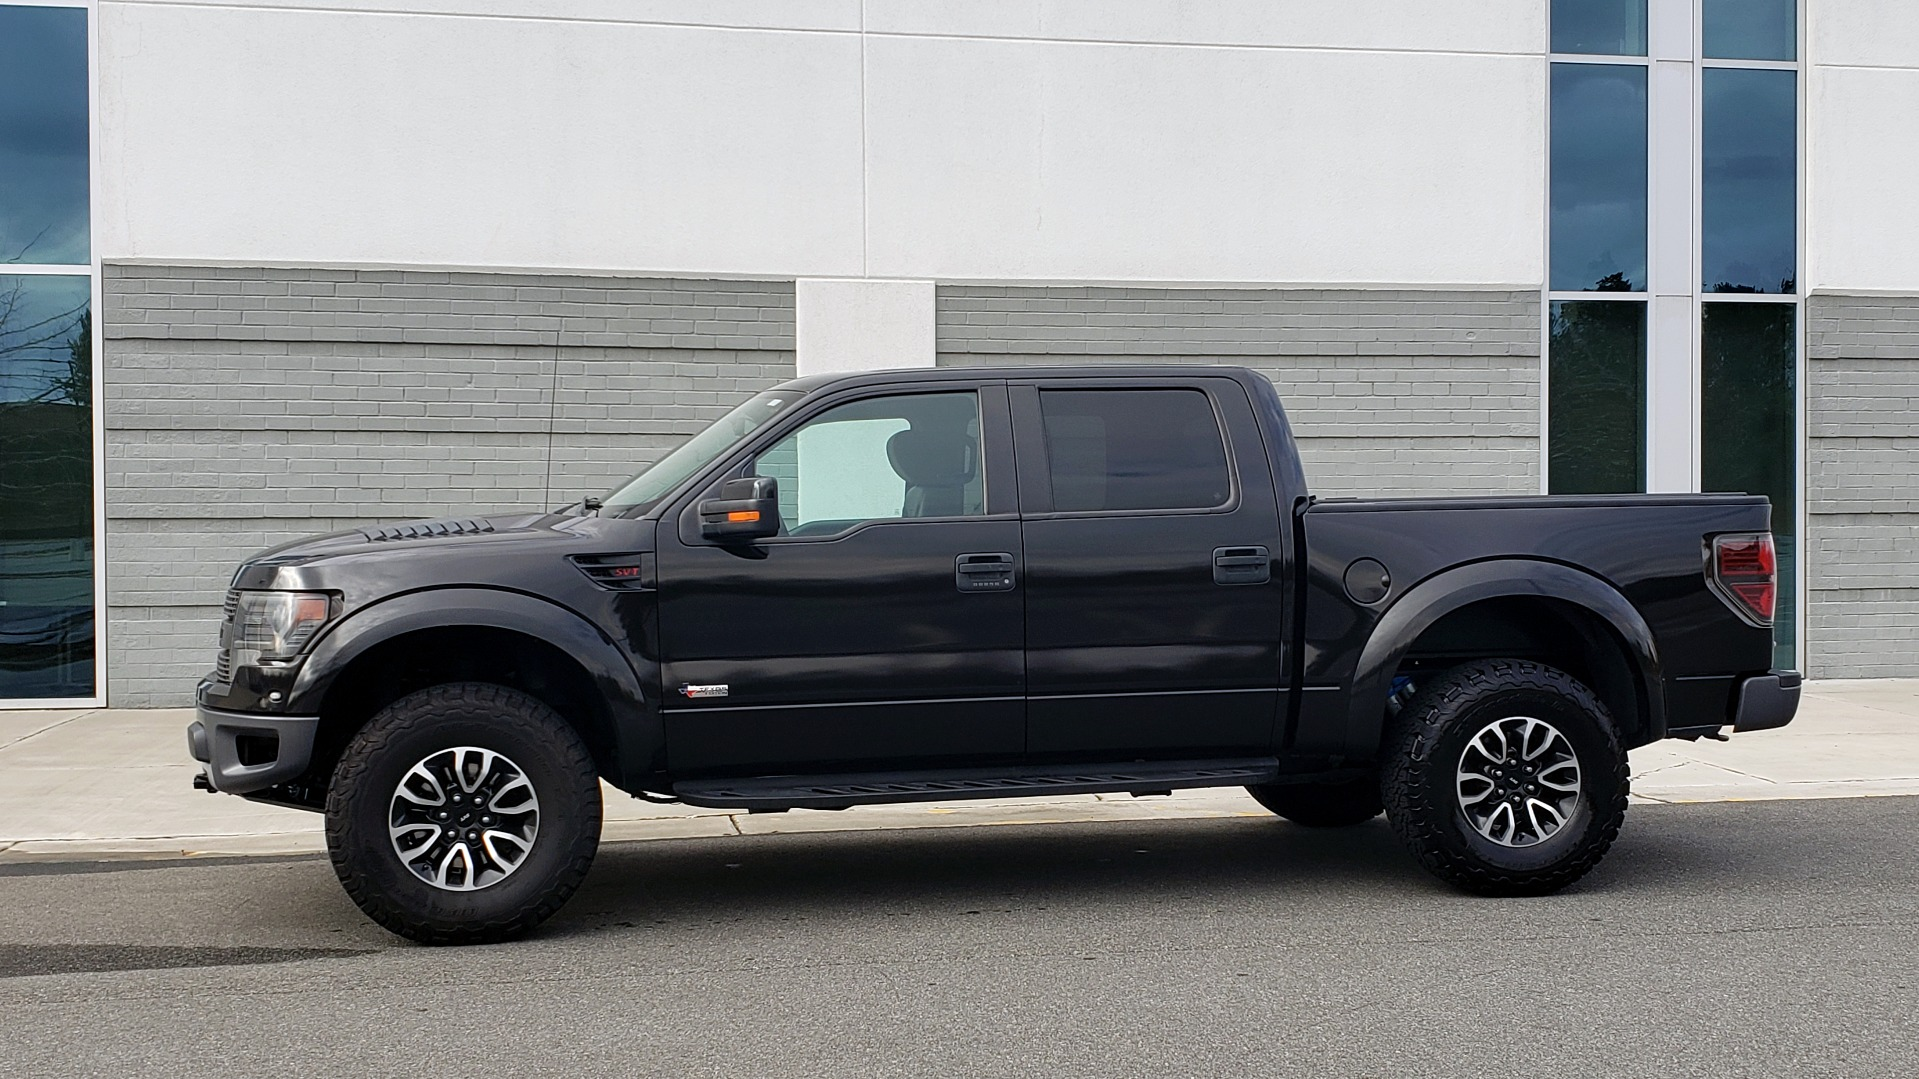 Used 2013 Ford F-150 SVT RAPTOR 4X4 SUPERCREW / 6.2L V8 / 6-SPD AUTO / NAV / LUX PKG for sale Sold at Formula Imports in Charlotte NC 28227 4